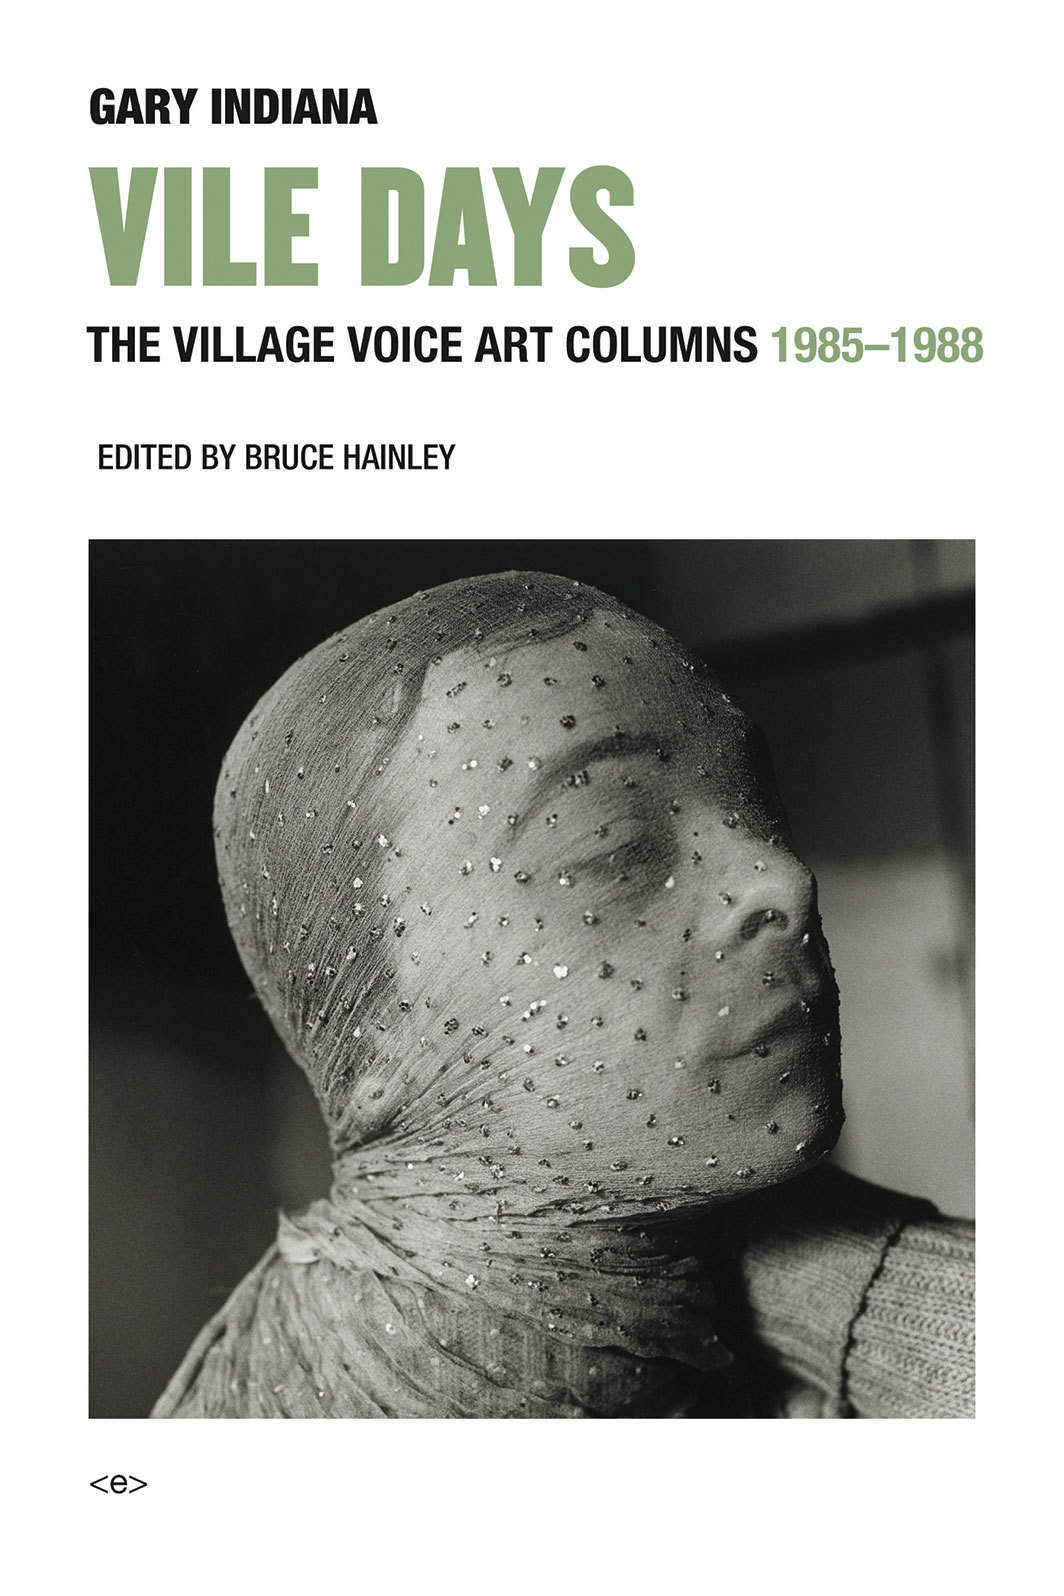 Cover of Gary Indiana's Vile Days: The Village Voice Art Columns, 1985–1988. (Semiotext[e], 2018).